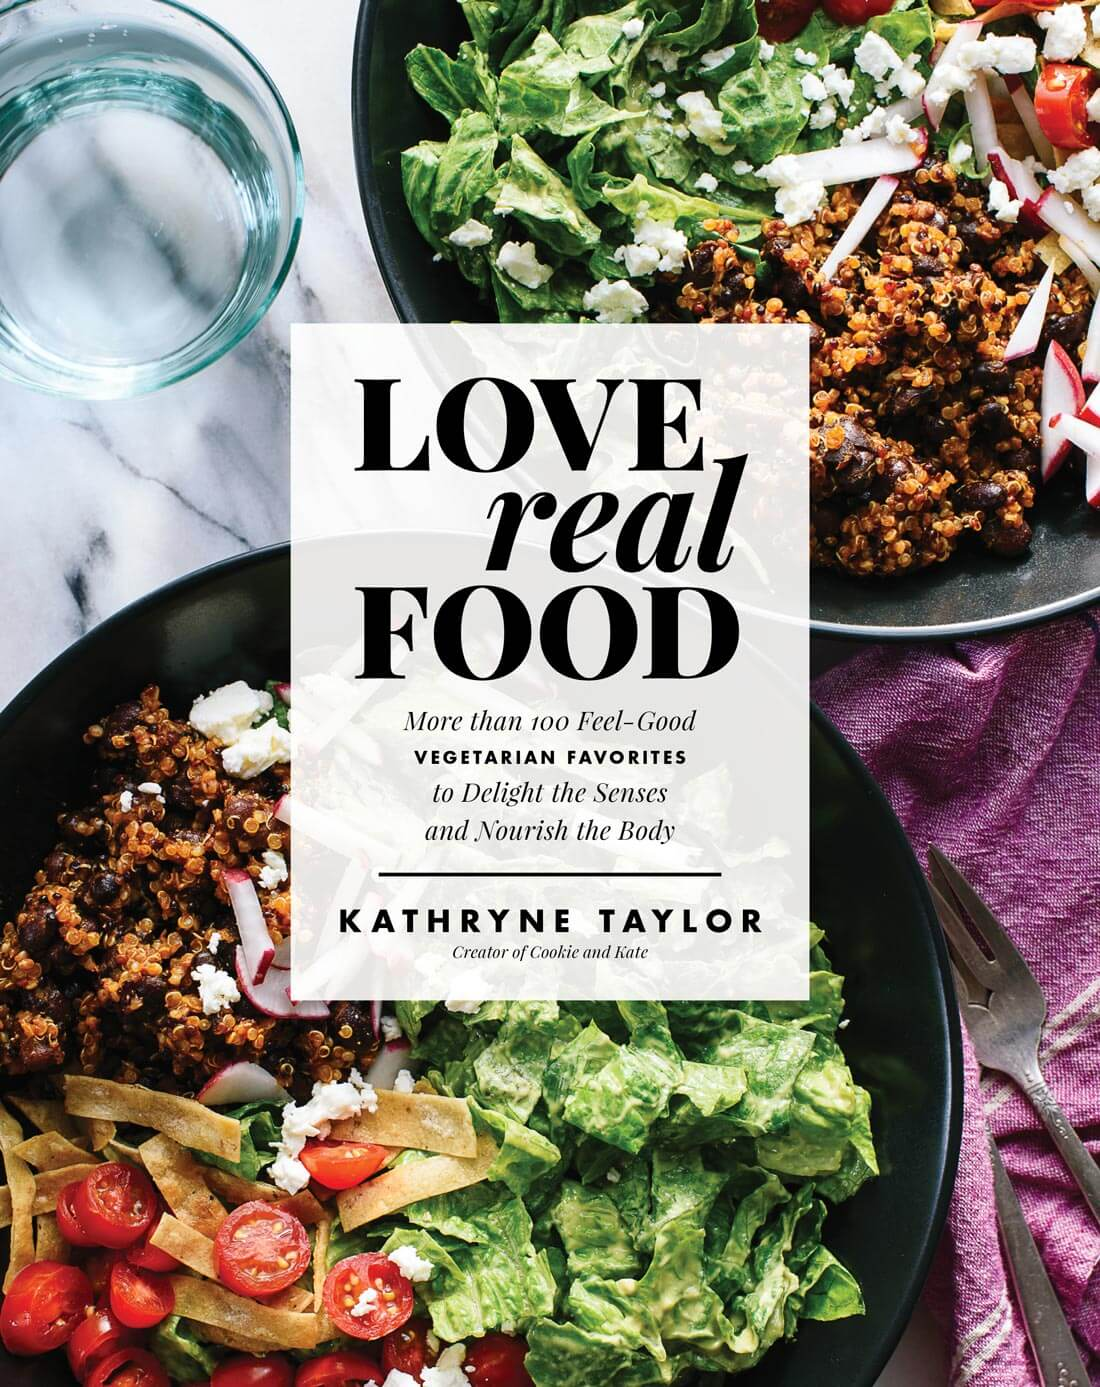 Love Real Food's cover